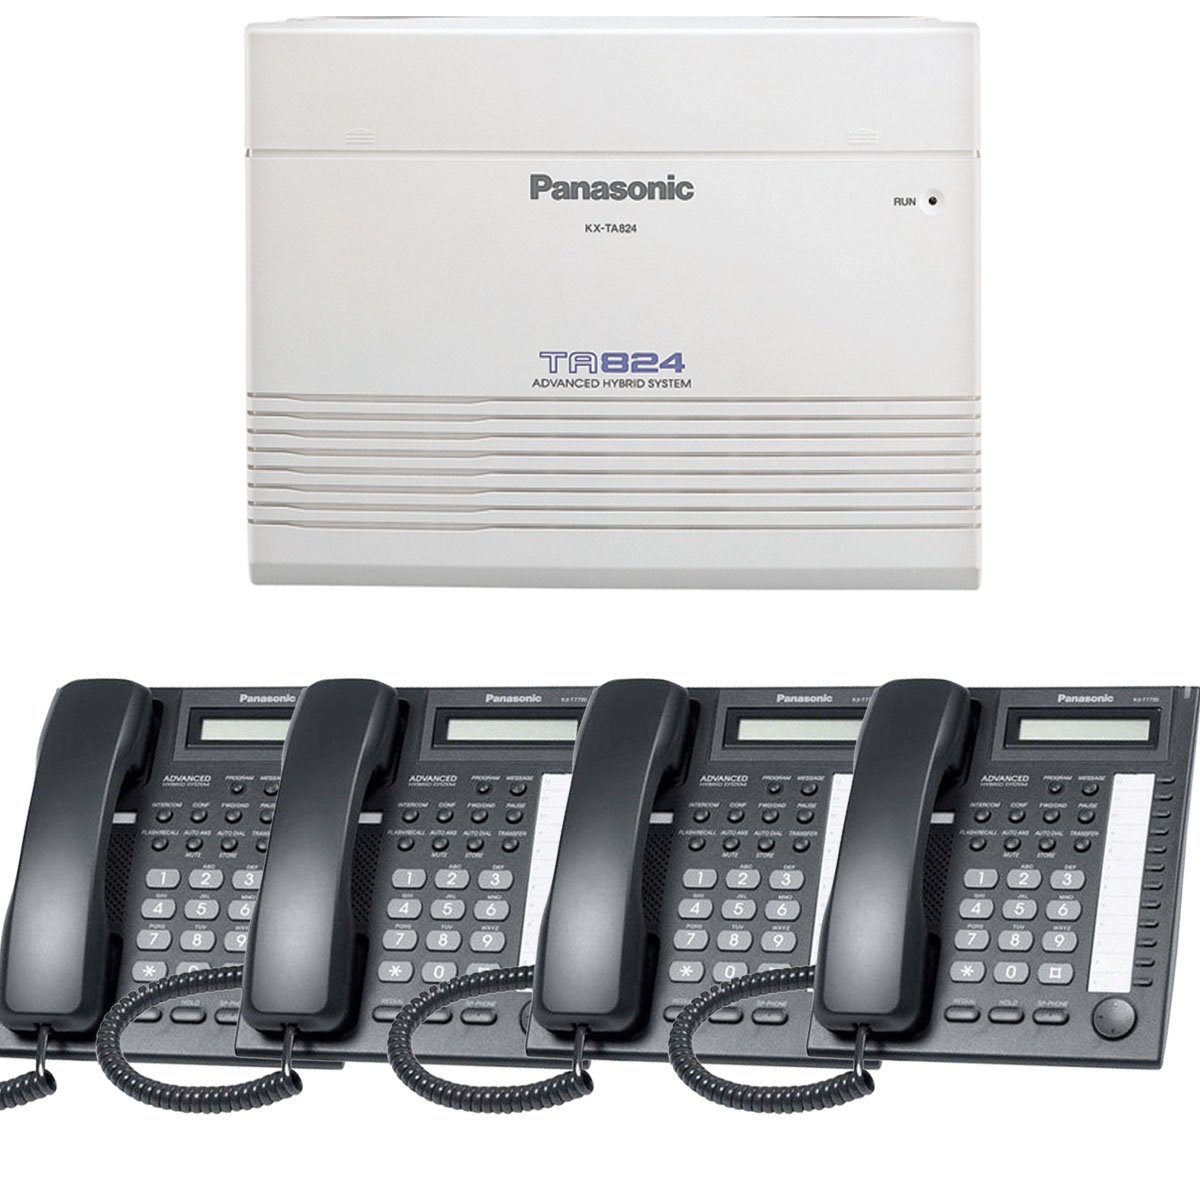 Panasonic Small Office Business Phone System Bundle Brand New includiing KX-T7730 4 Phones Black and KX-TA824 PBX Advanced Phone System With 1 Year Warranty Sold by Phone Source Direct USA by Panasonic